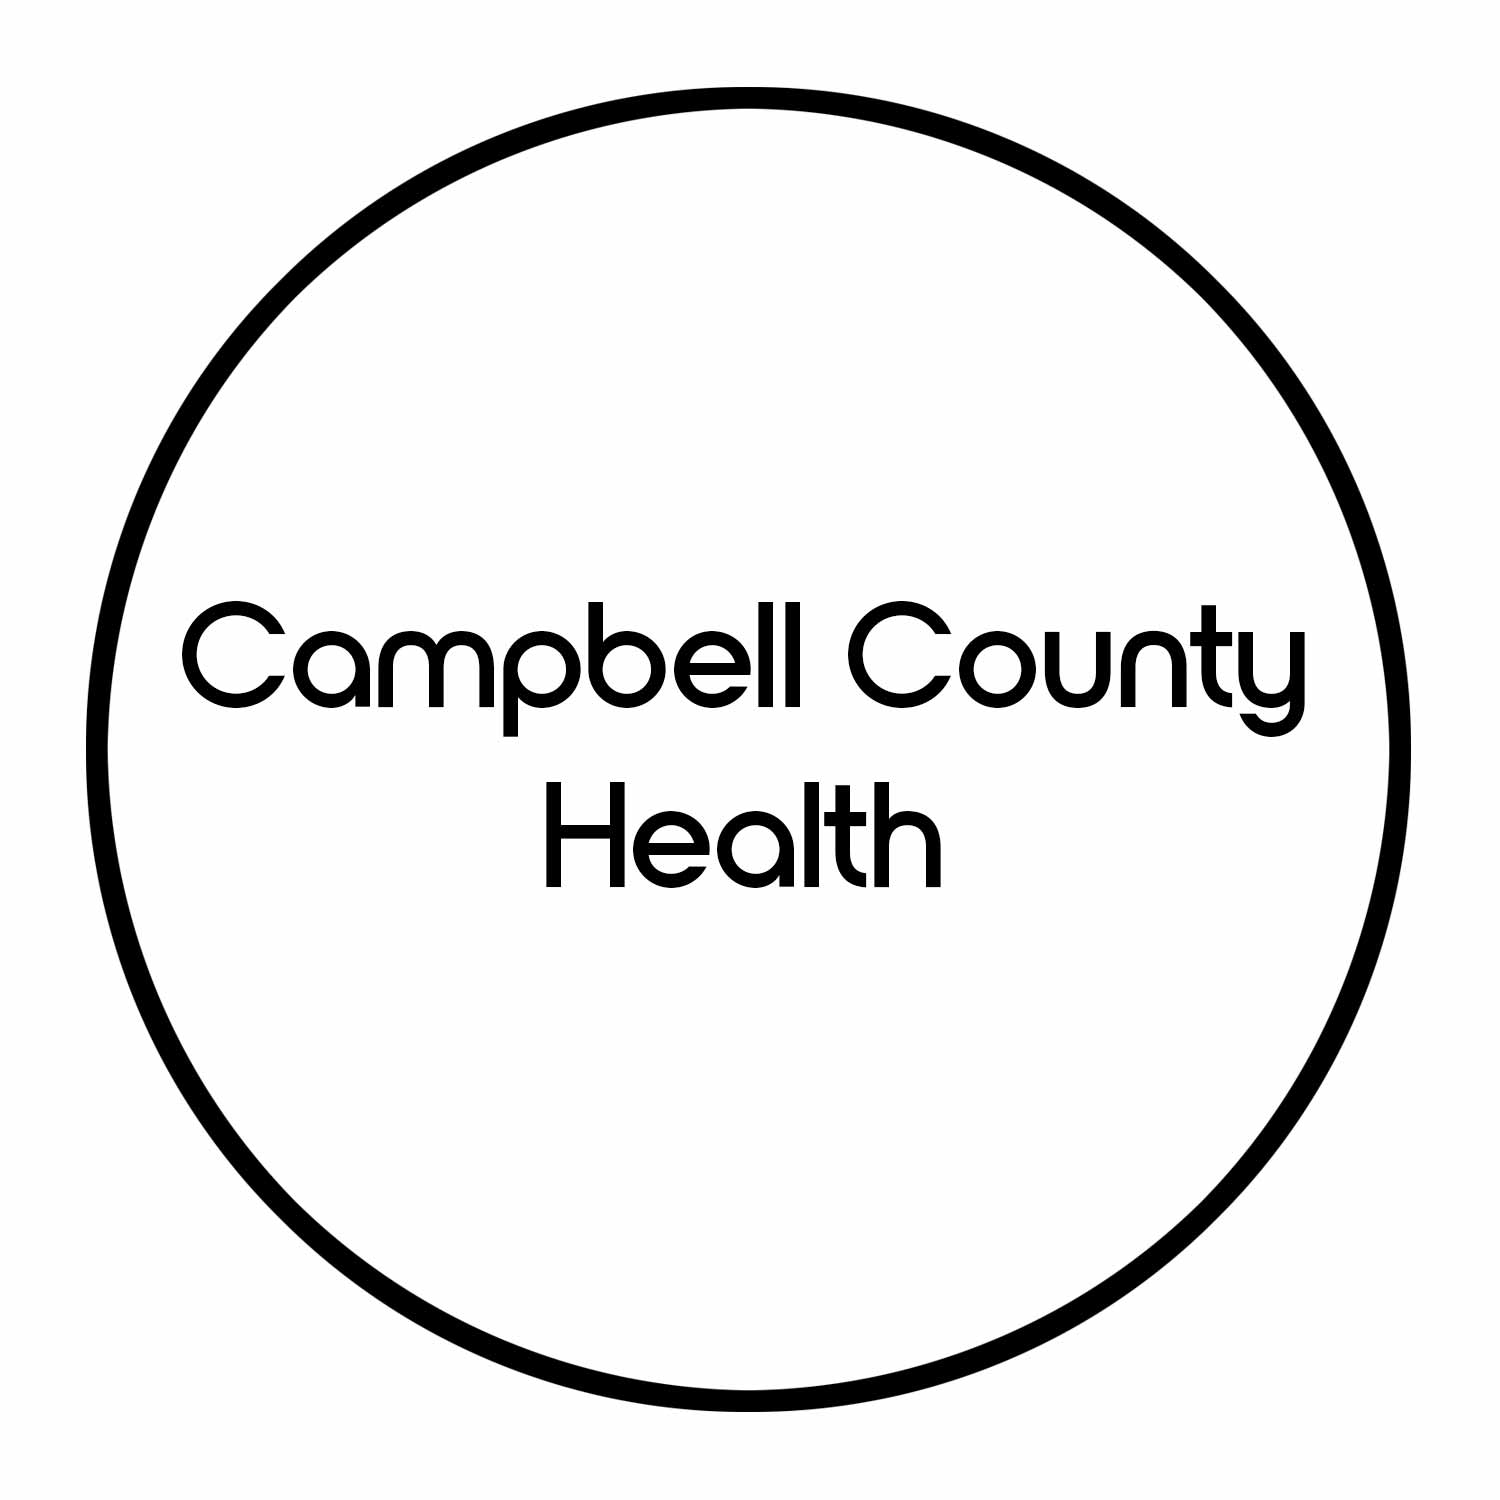 campbell-county-health-icon.jpg